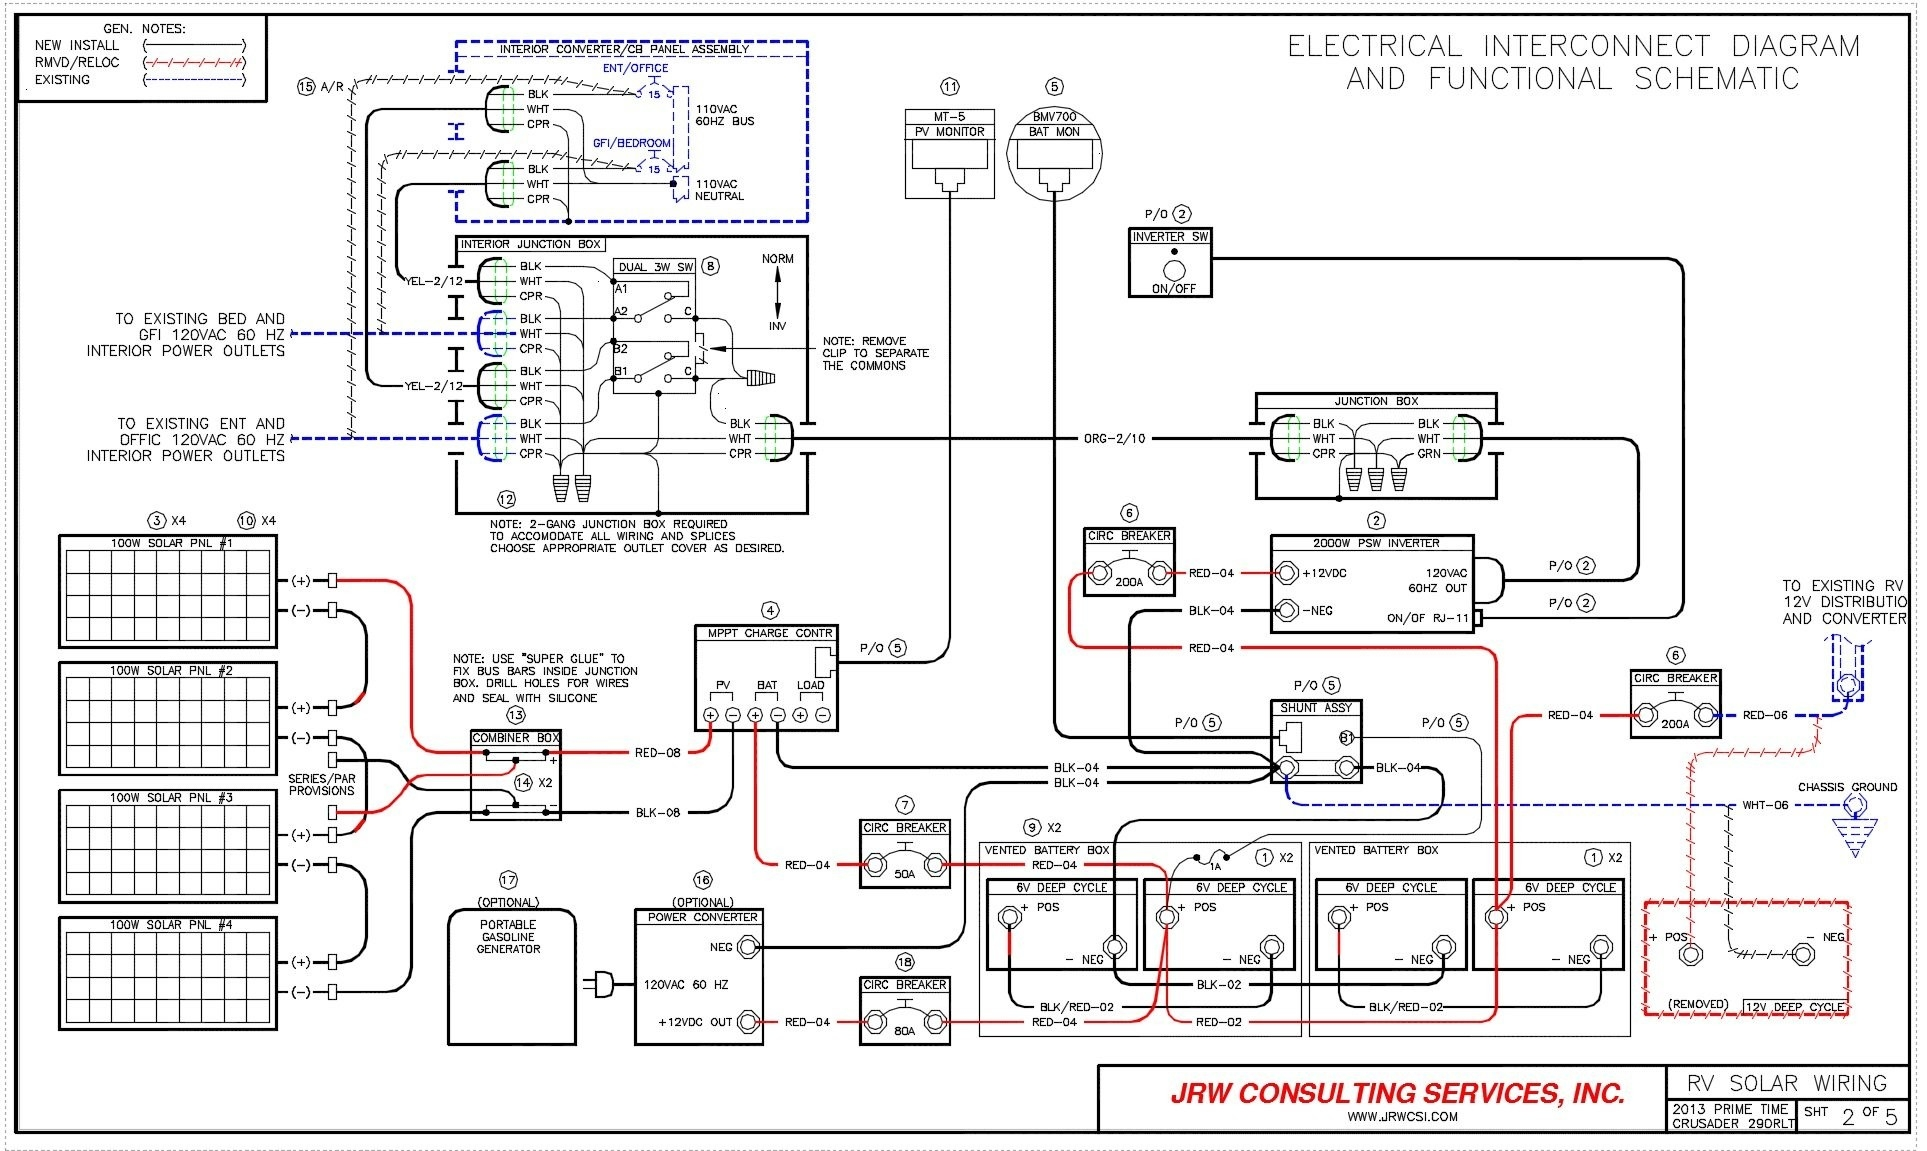 holiday rambler wiring diagram Collection-Wiring Diagram for Rv Park Valid Rv solar Wiring Diagram Unique Rv Park Wiring Diagram Wiring 20-b